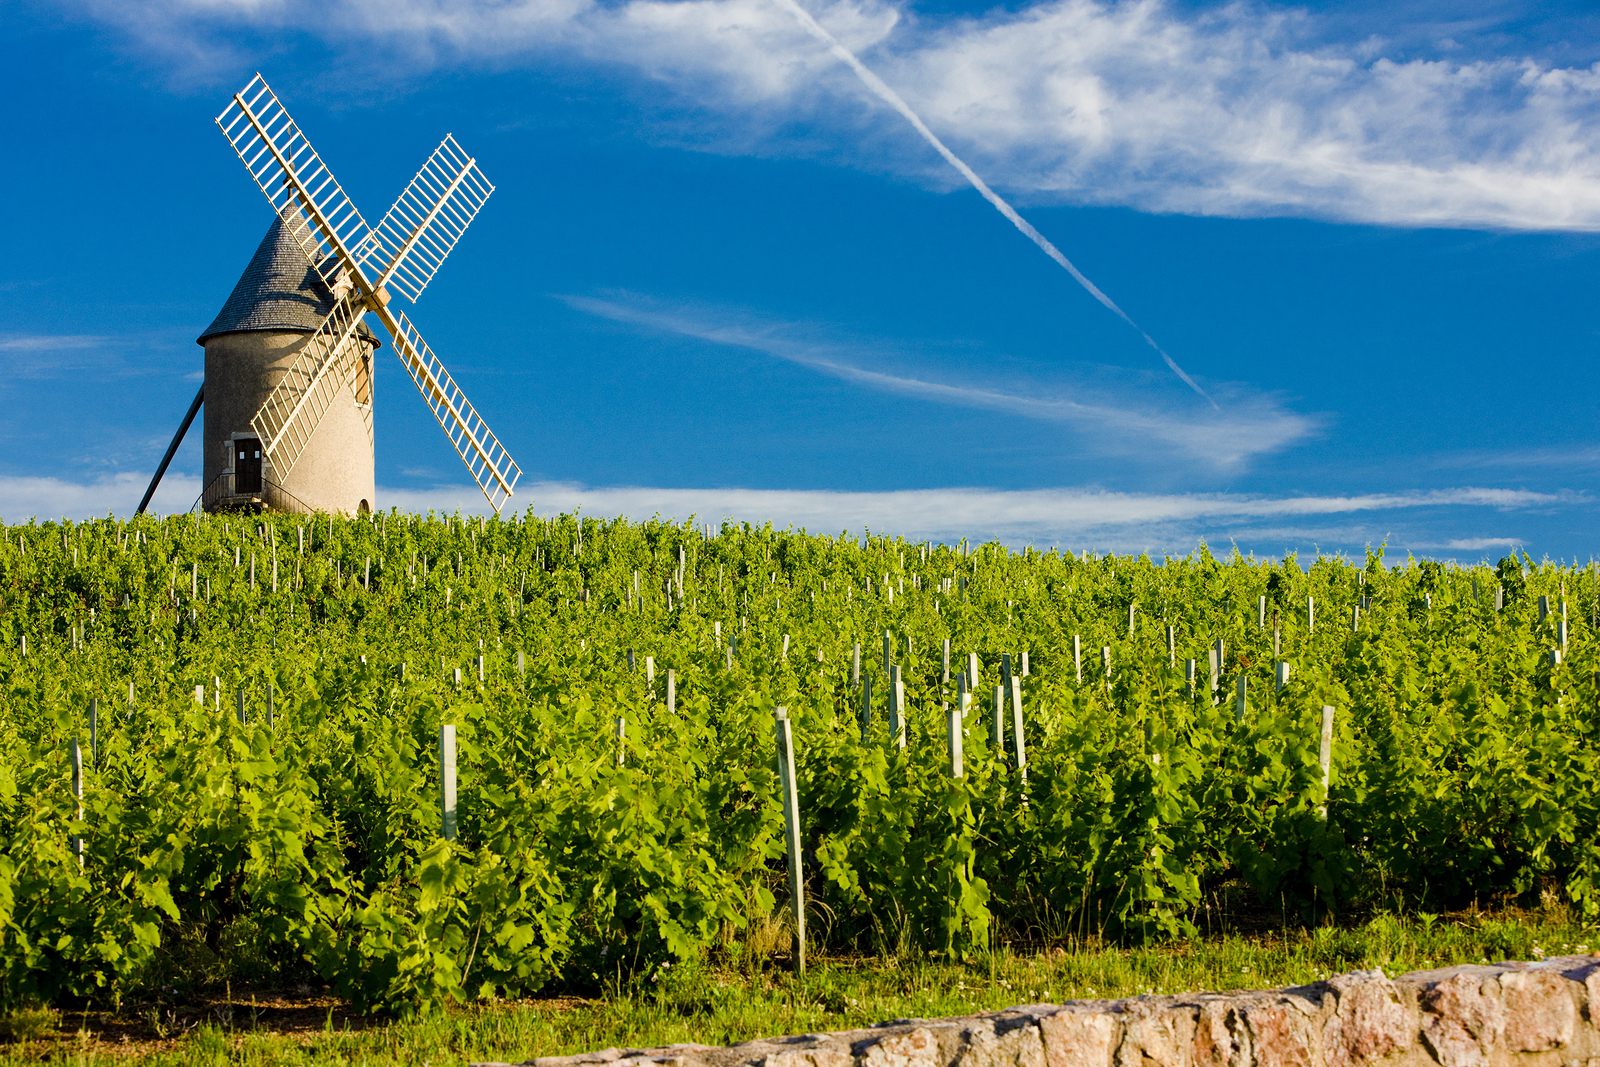 Windmill and vineyard, Moulin-à-Vent, Cru du Beaujolais, Burgundy, France